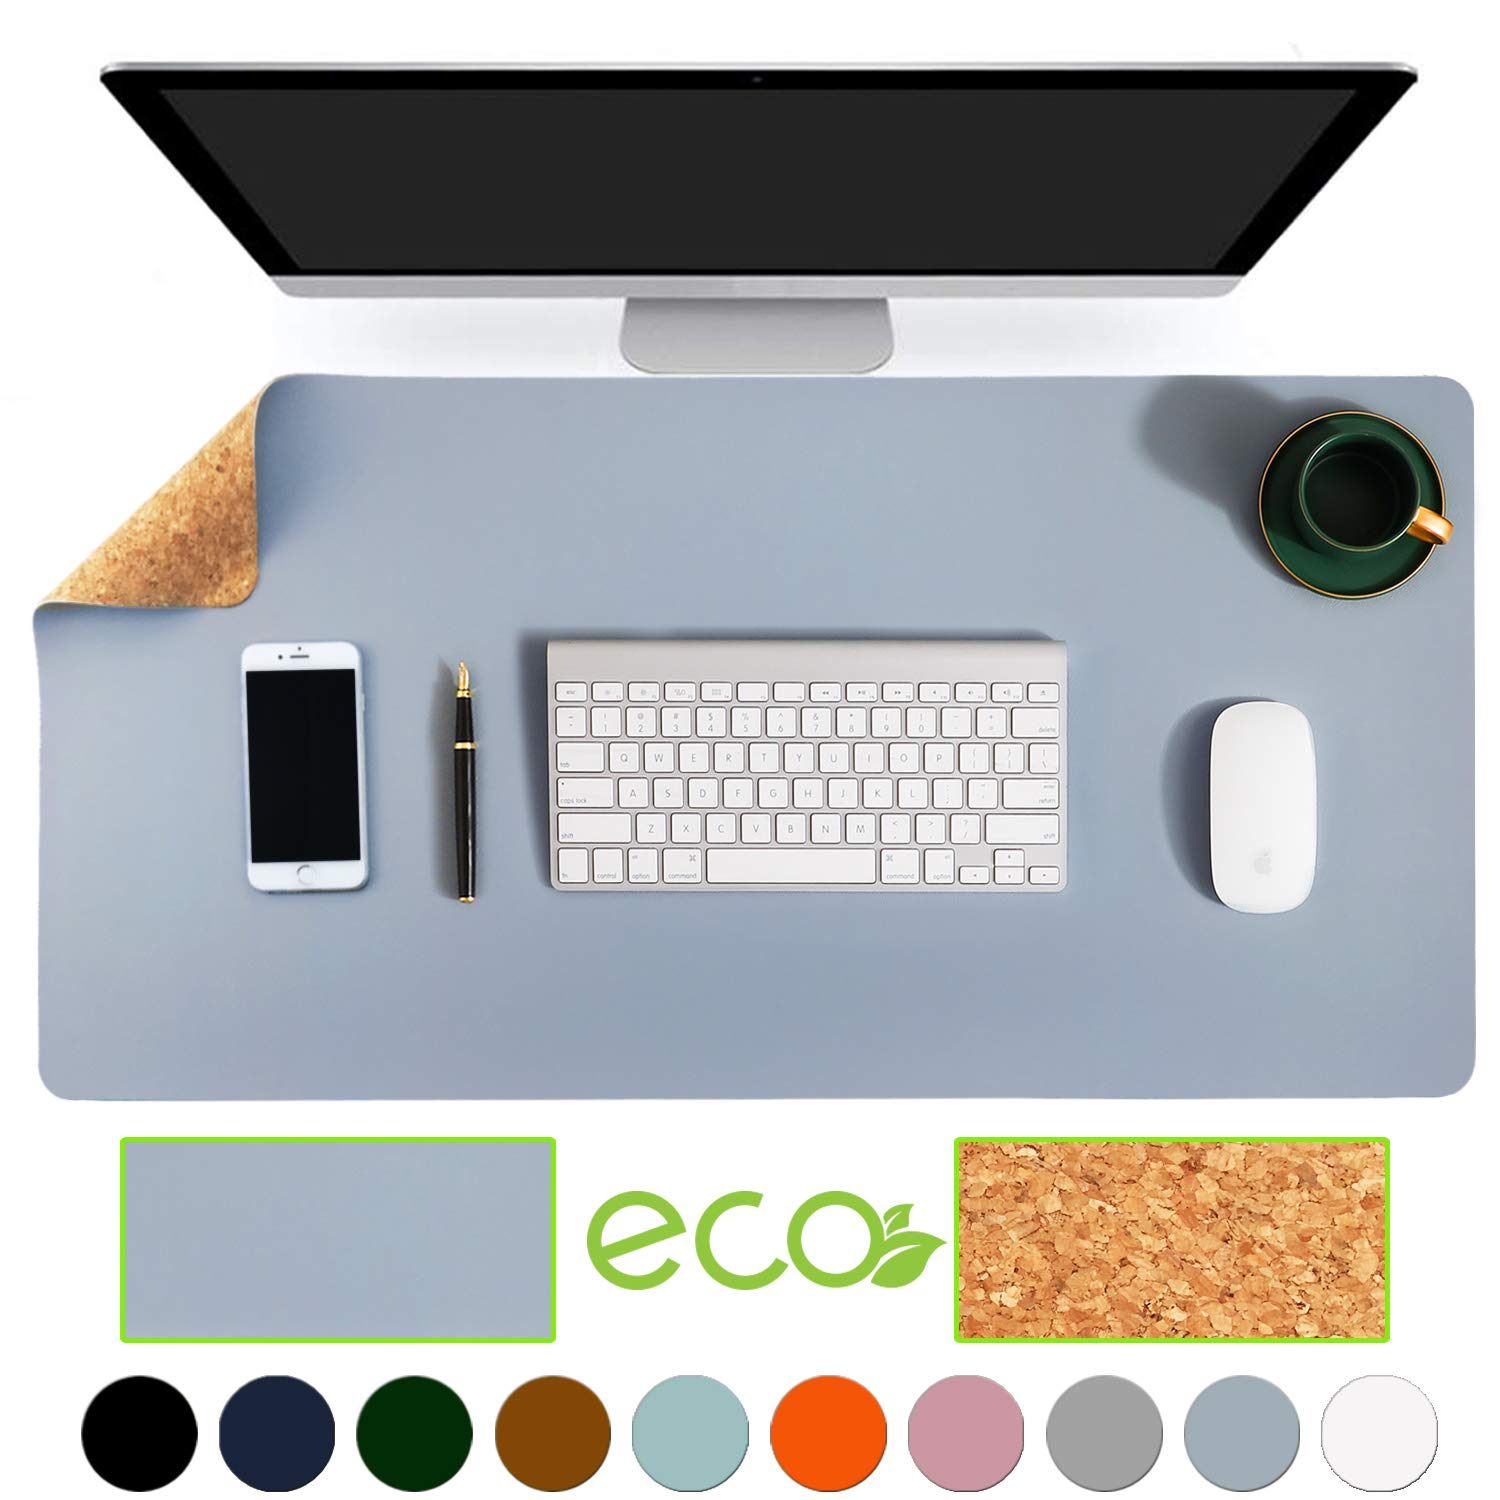 """Aothia Eco-Friendly Natural Cork & Leather Double-Sided Office Desk Mat 31.5"""" x 15.7"""" Mouse Pad Smooth Surface Soft Easy Clean Waterproof PU Leather Desk Protector for Office/Home Gaming (Blue-Gray)"""